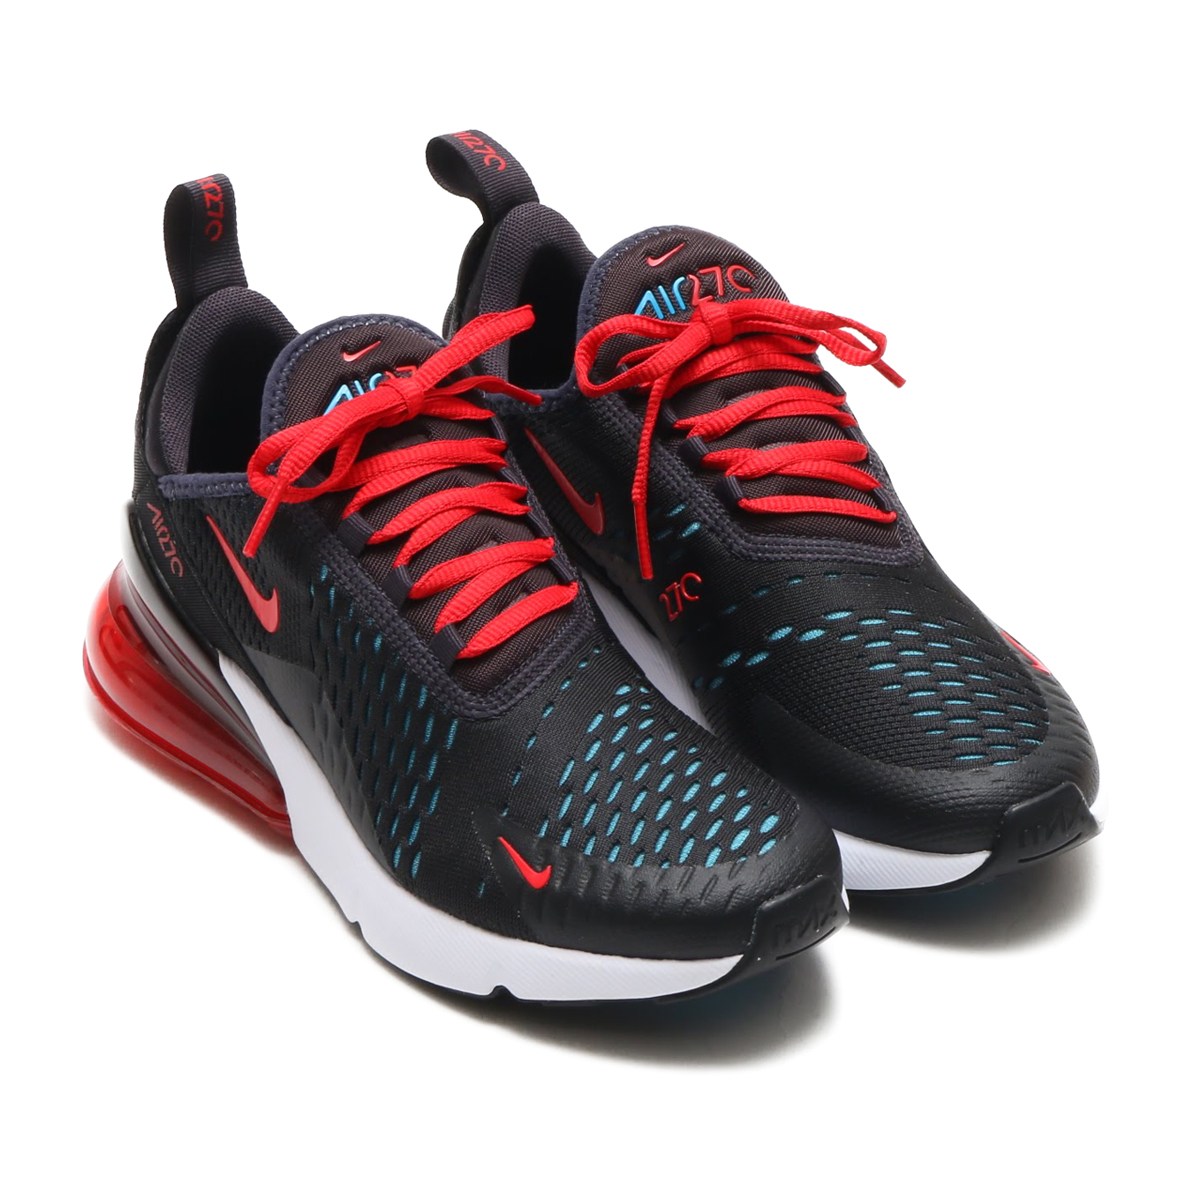 67ed66cf09 NIKE W AIR MAX 270 (Nike women Air Max 270) OIL GREY SPEED RED-NEO TURQ- BLACK 18SP-S